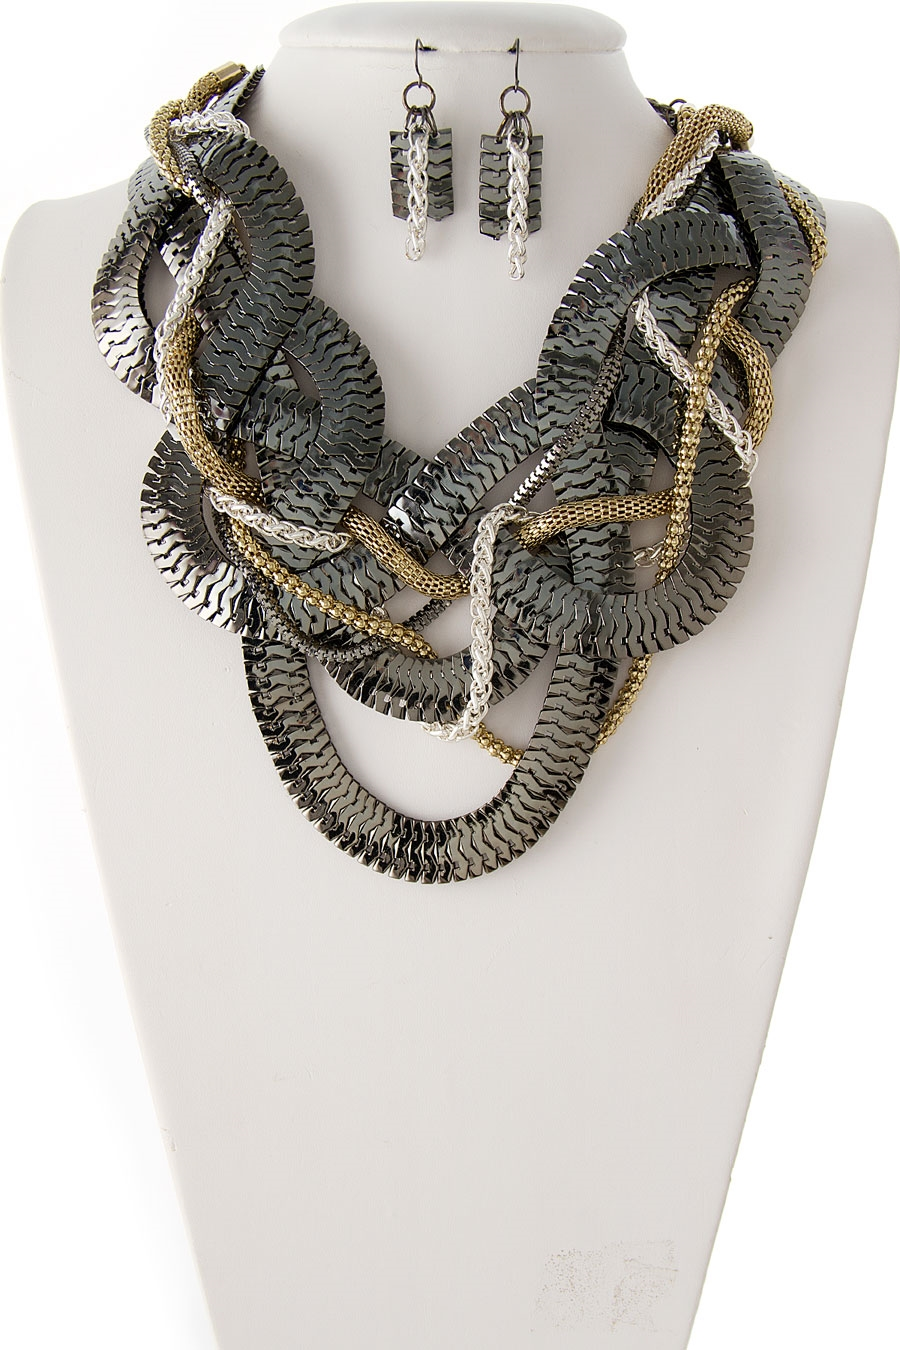 BRAIDED MESH NECKLACE - orangeshine.com